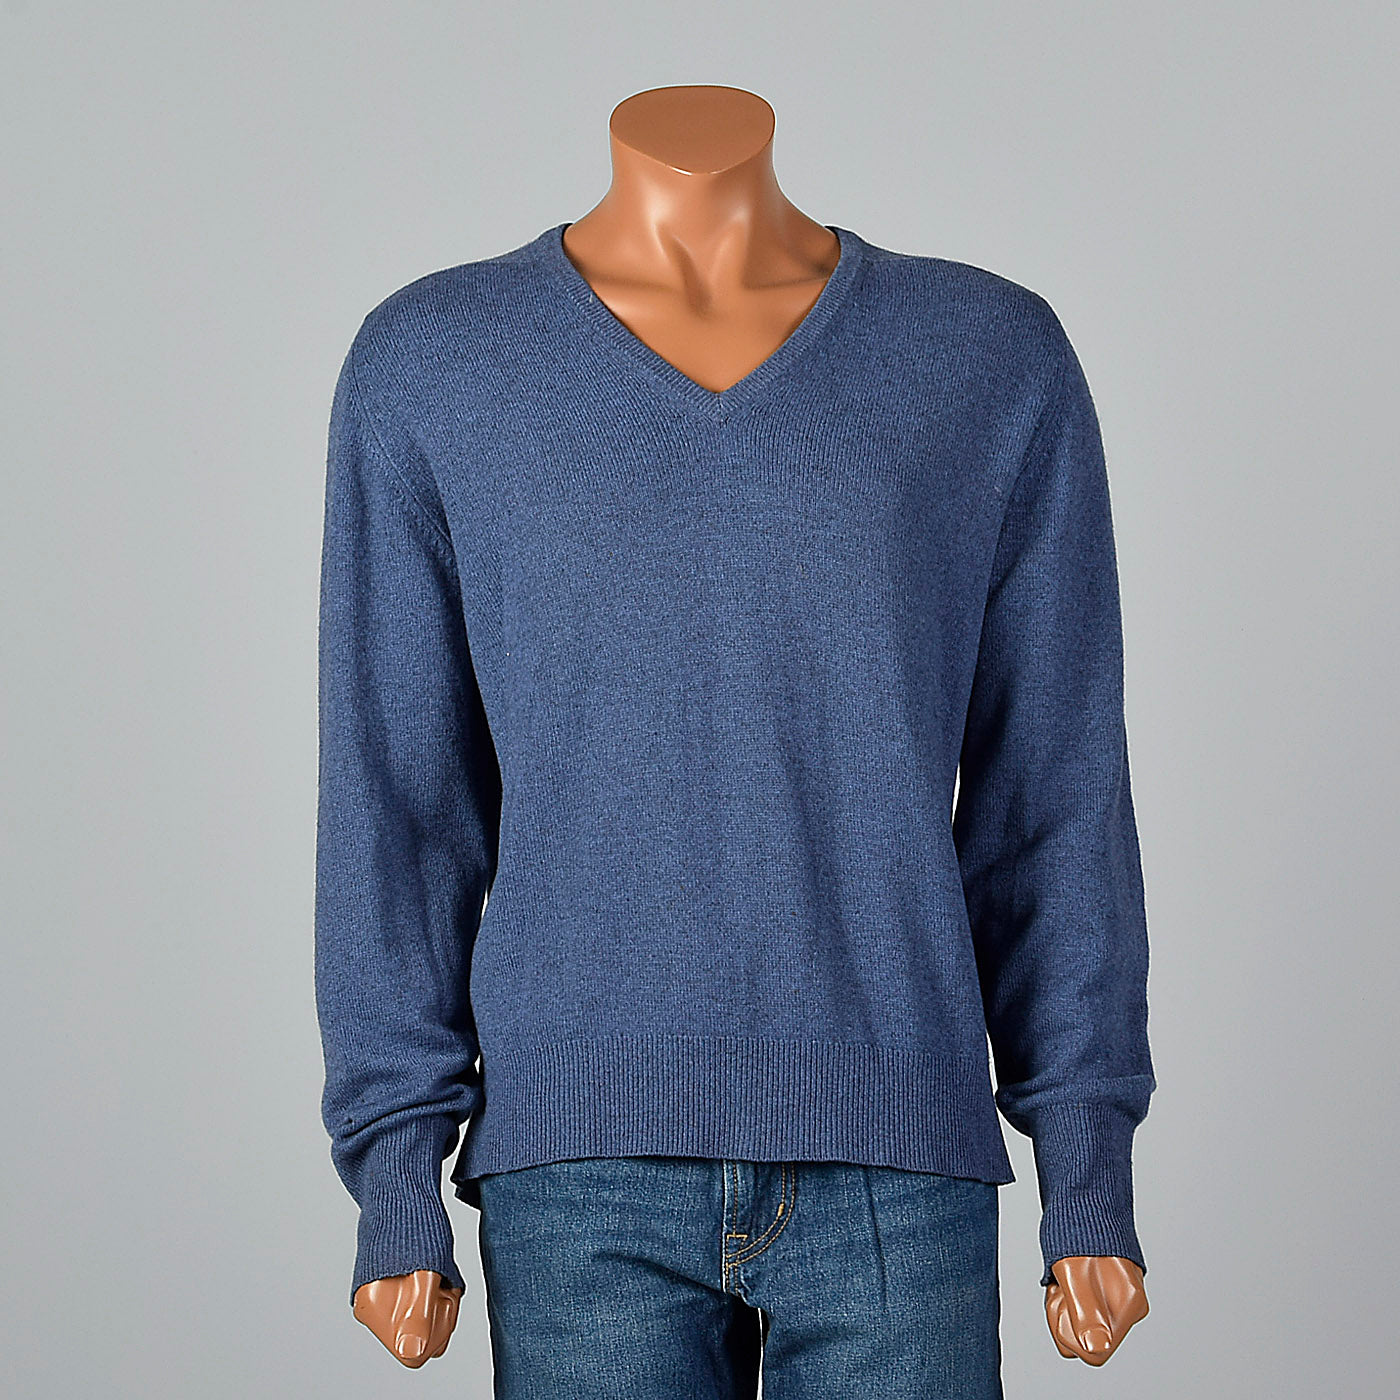 1970s Mens Blue Cashmere Sweater with V Neck